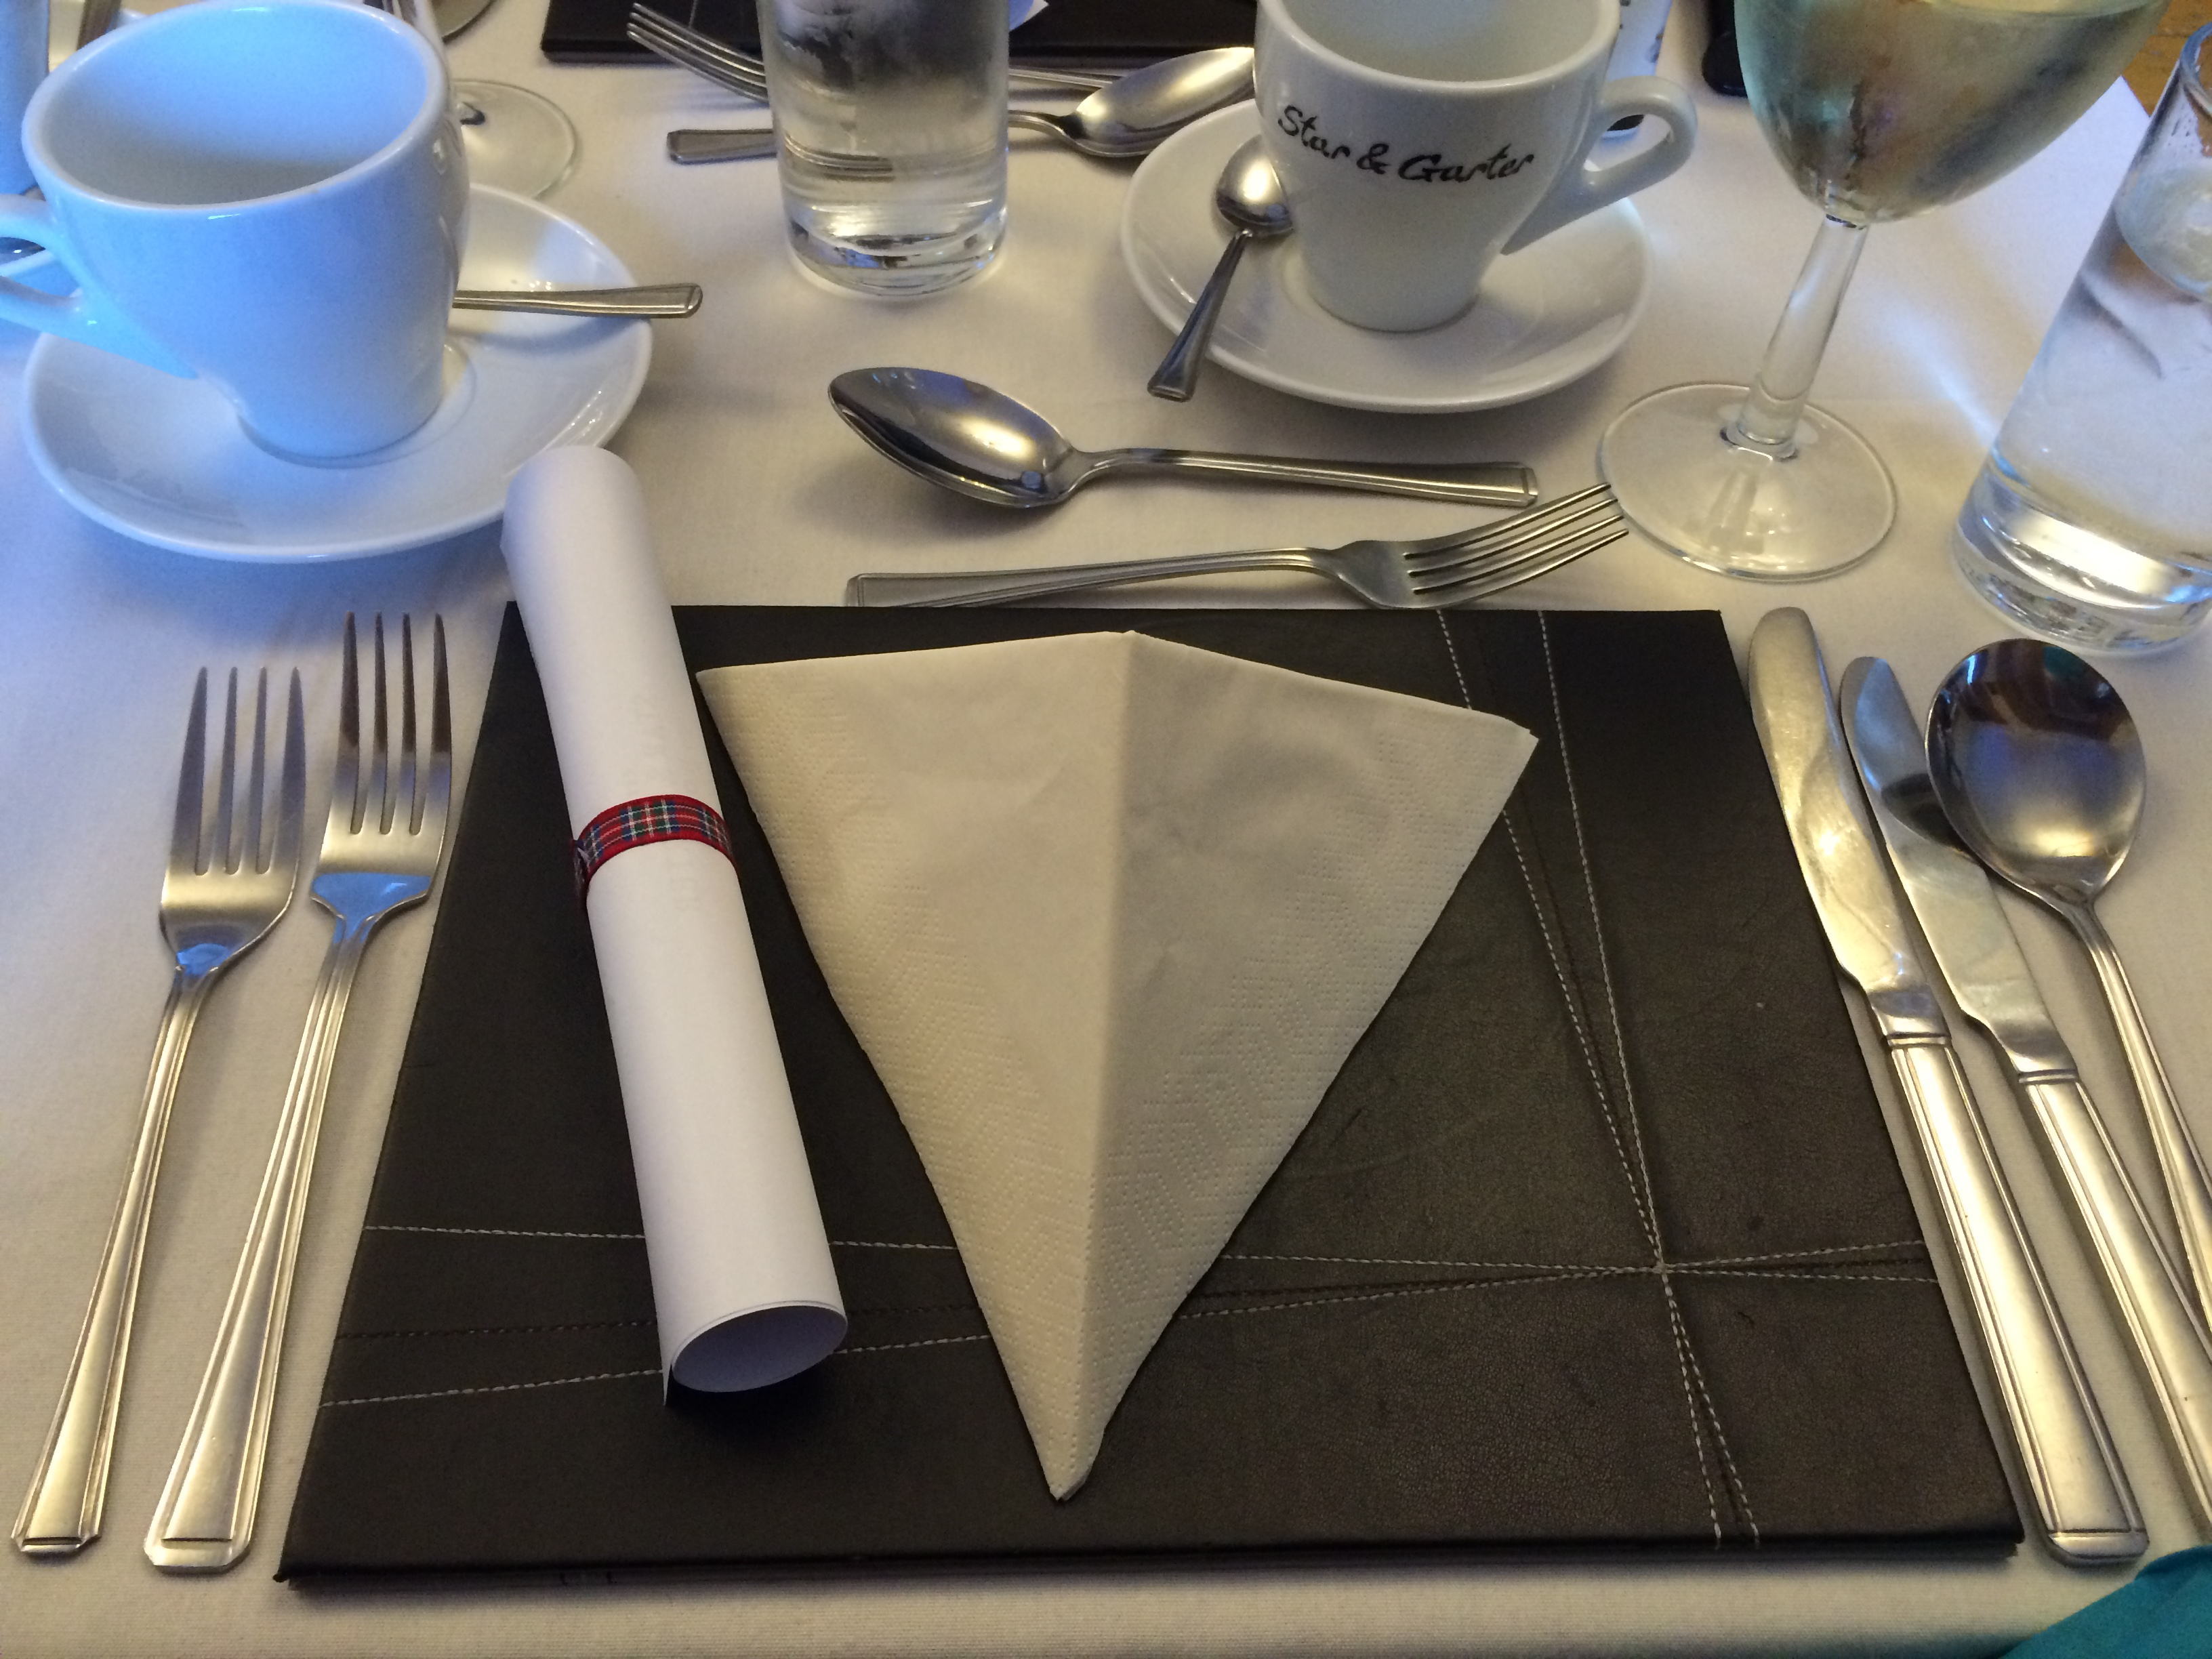 A place setting at A Taste of Outlander